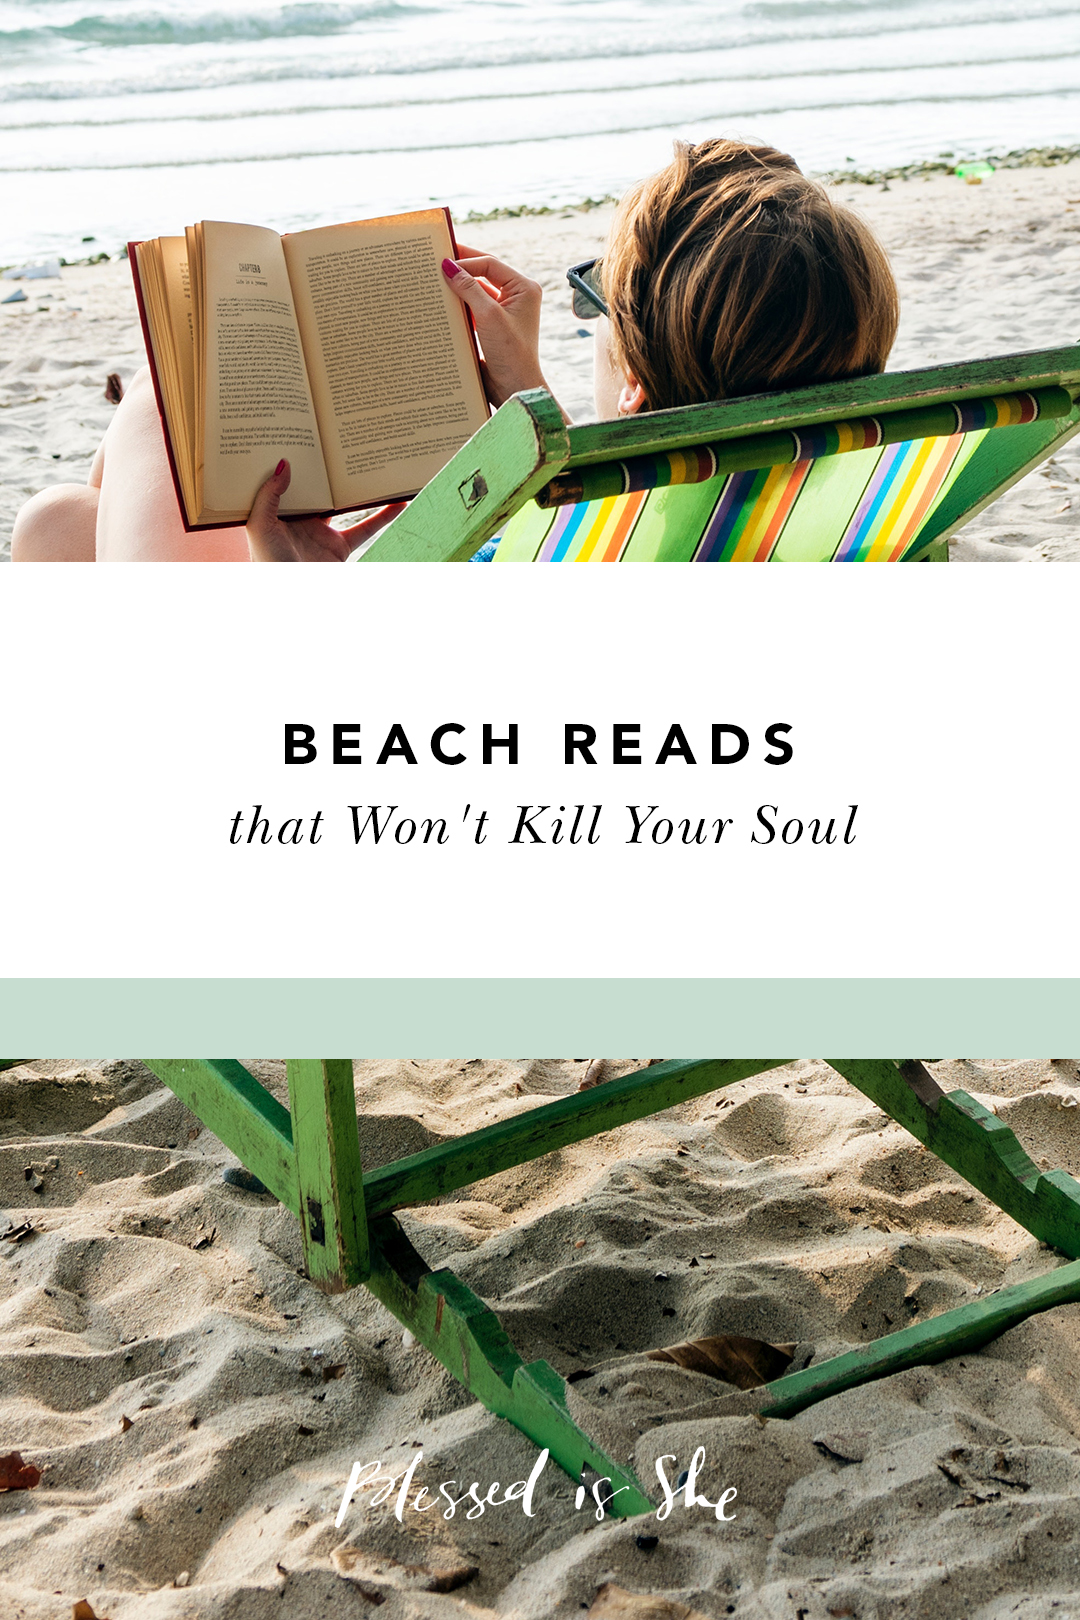 wholesome books for the beach